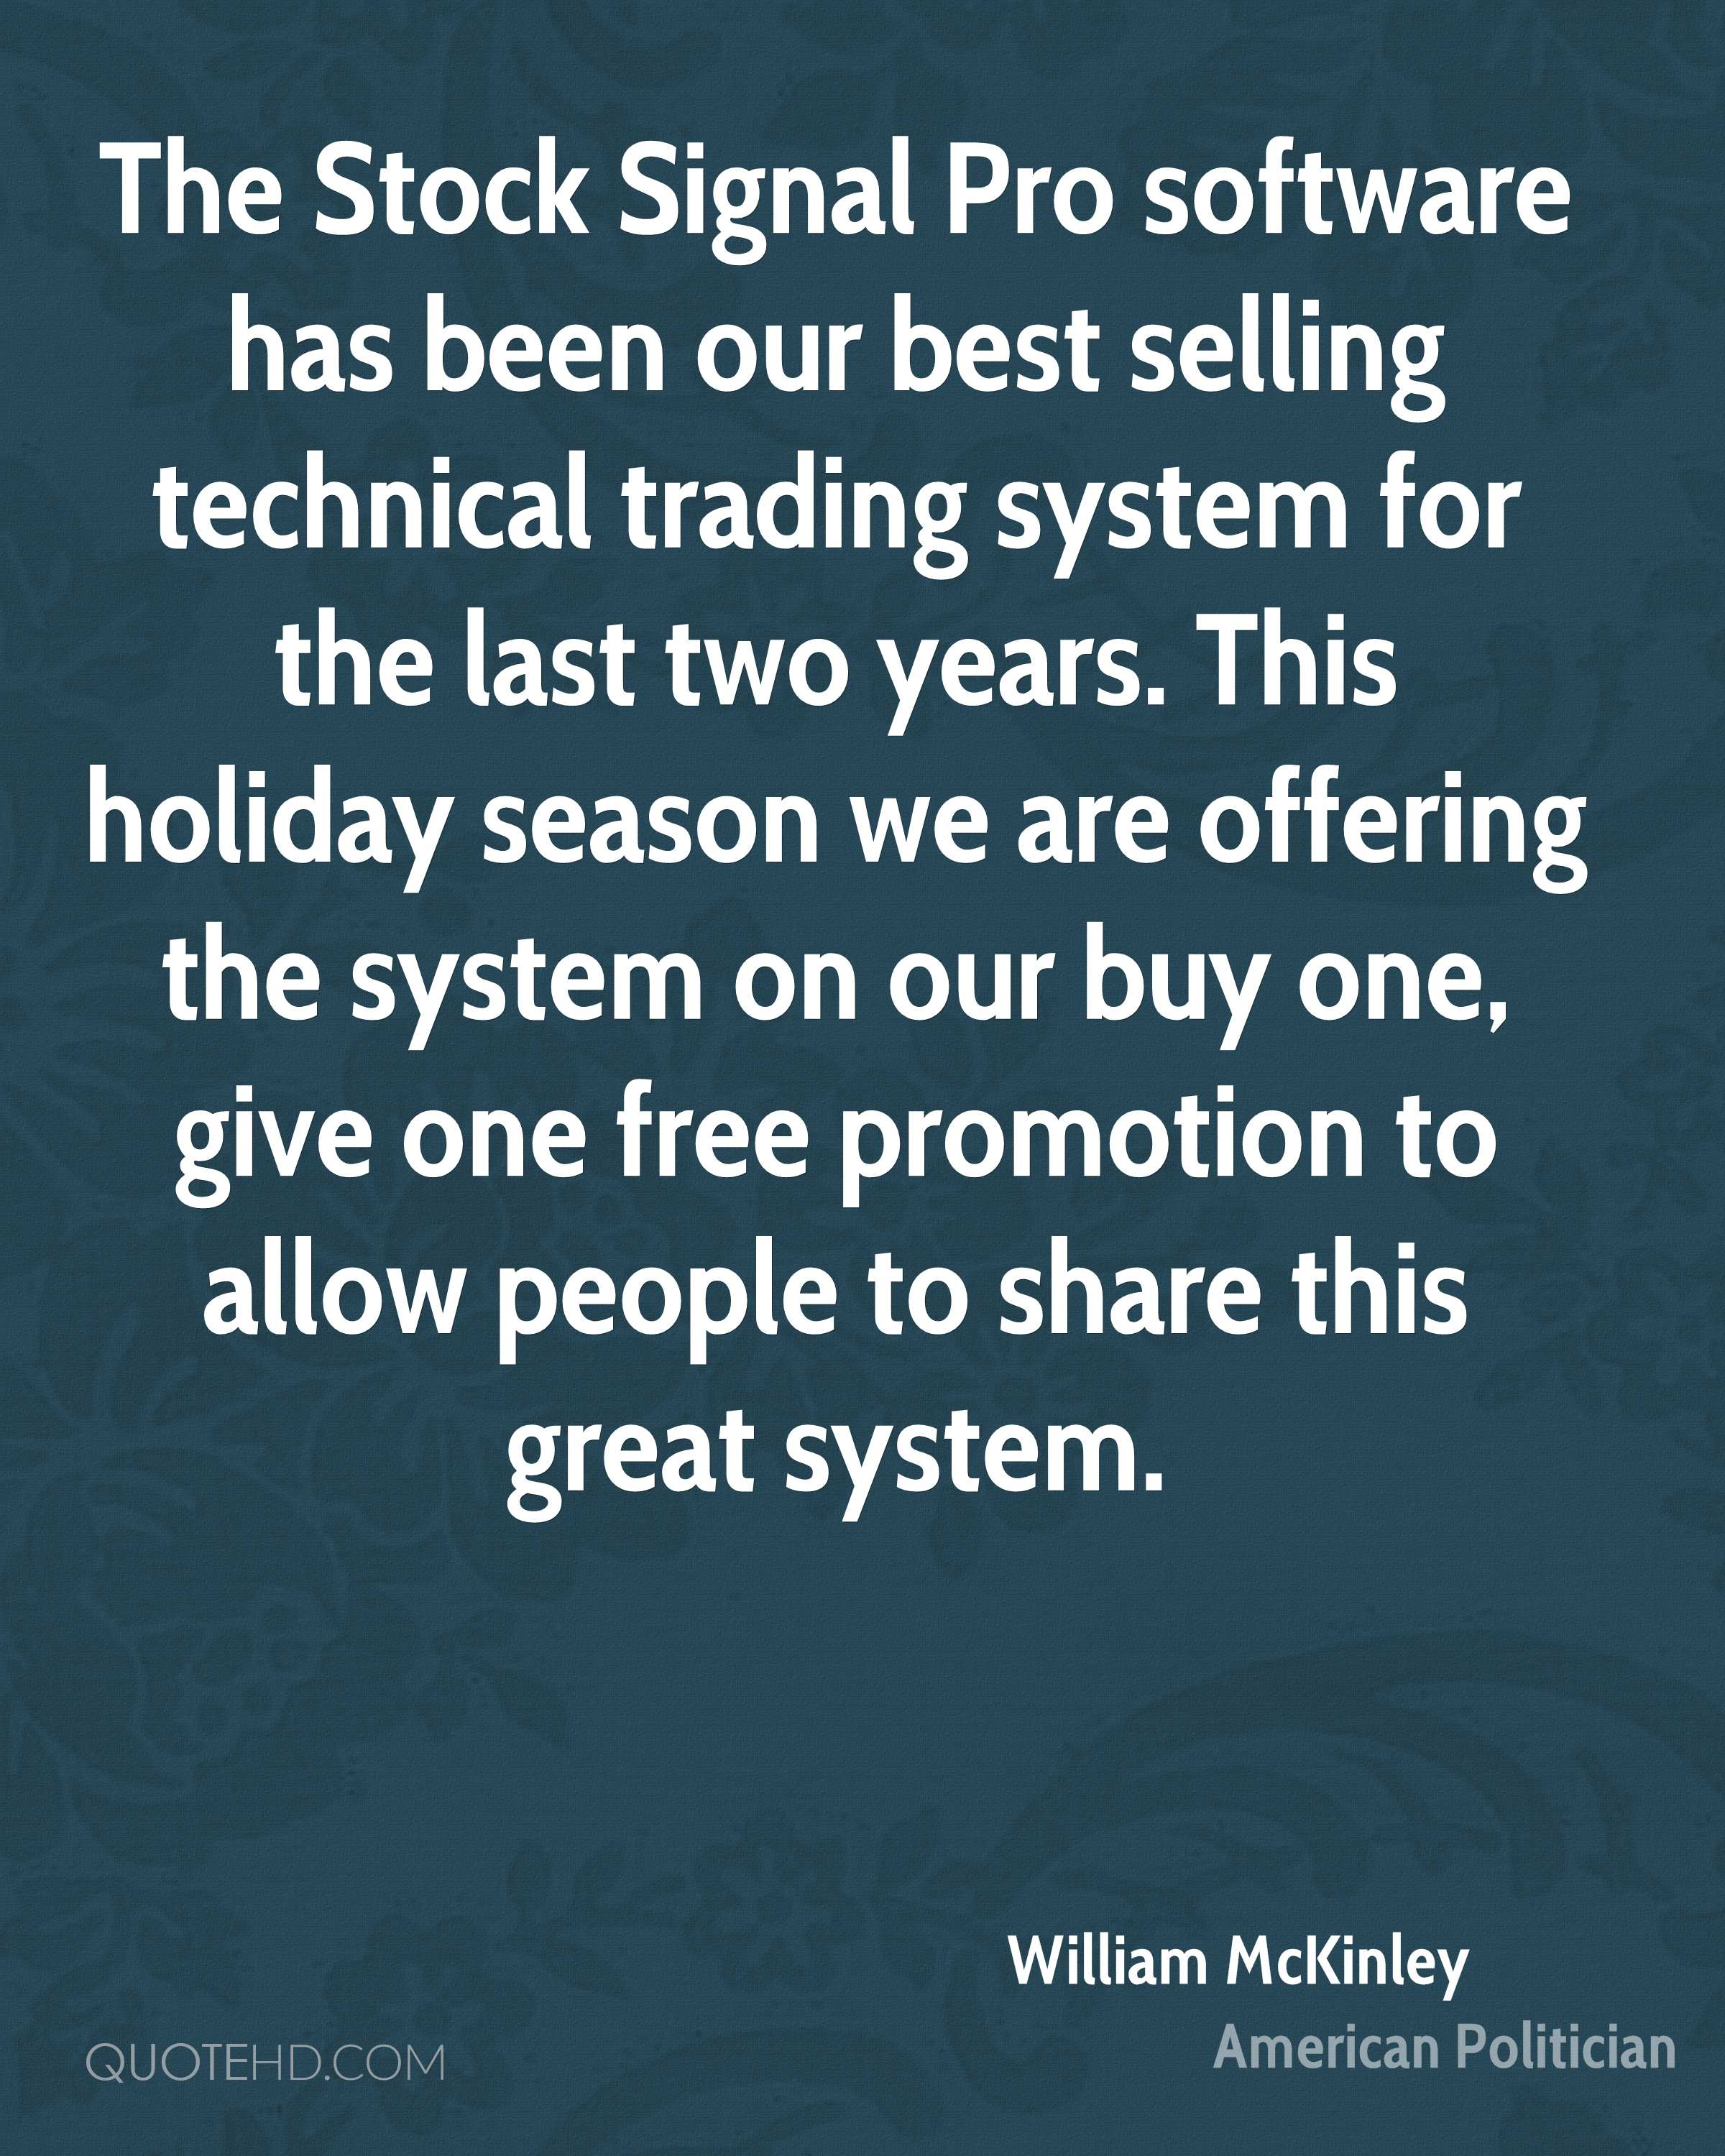 The Stock Signal Pro software has been our best selling technical trading system for the last two years. This holiday season we are offering the system on our buy one, give one free promotion to allow people to share this great system.